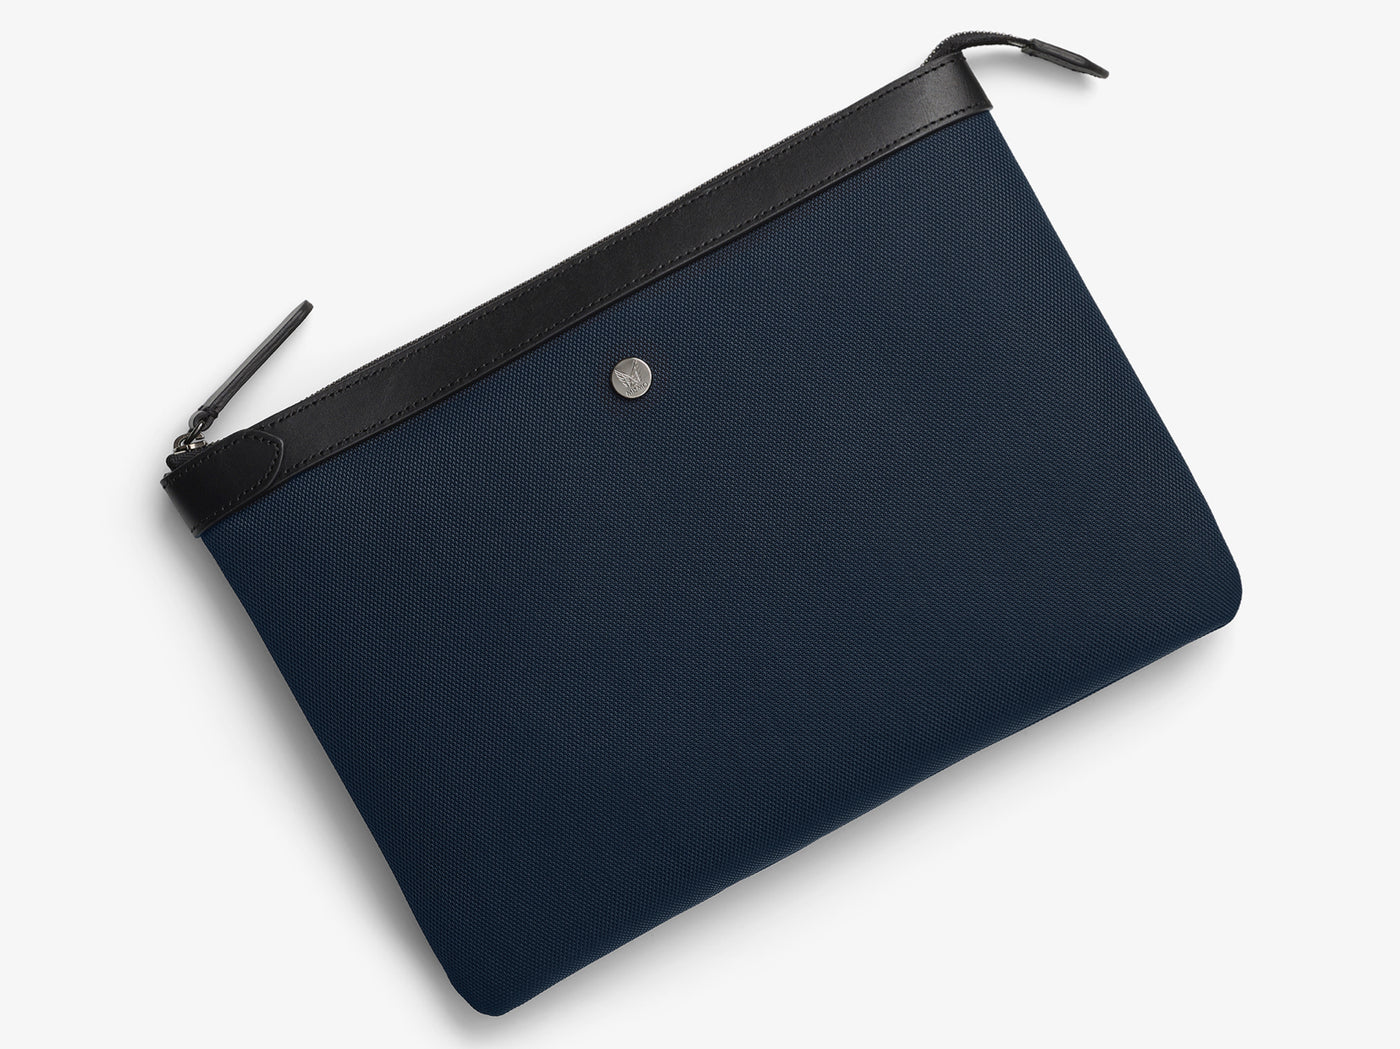 M/S Pouch Large – Deep blue/Black